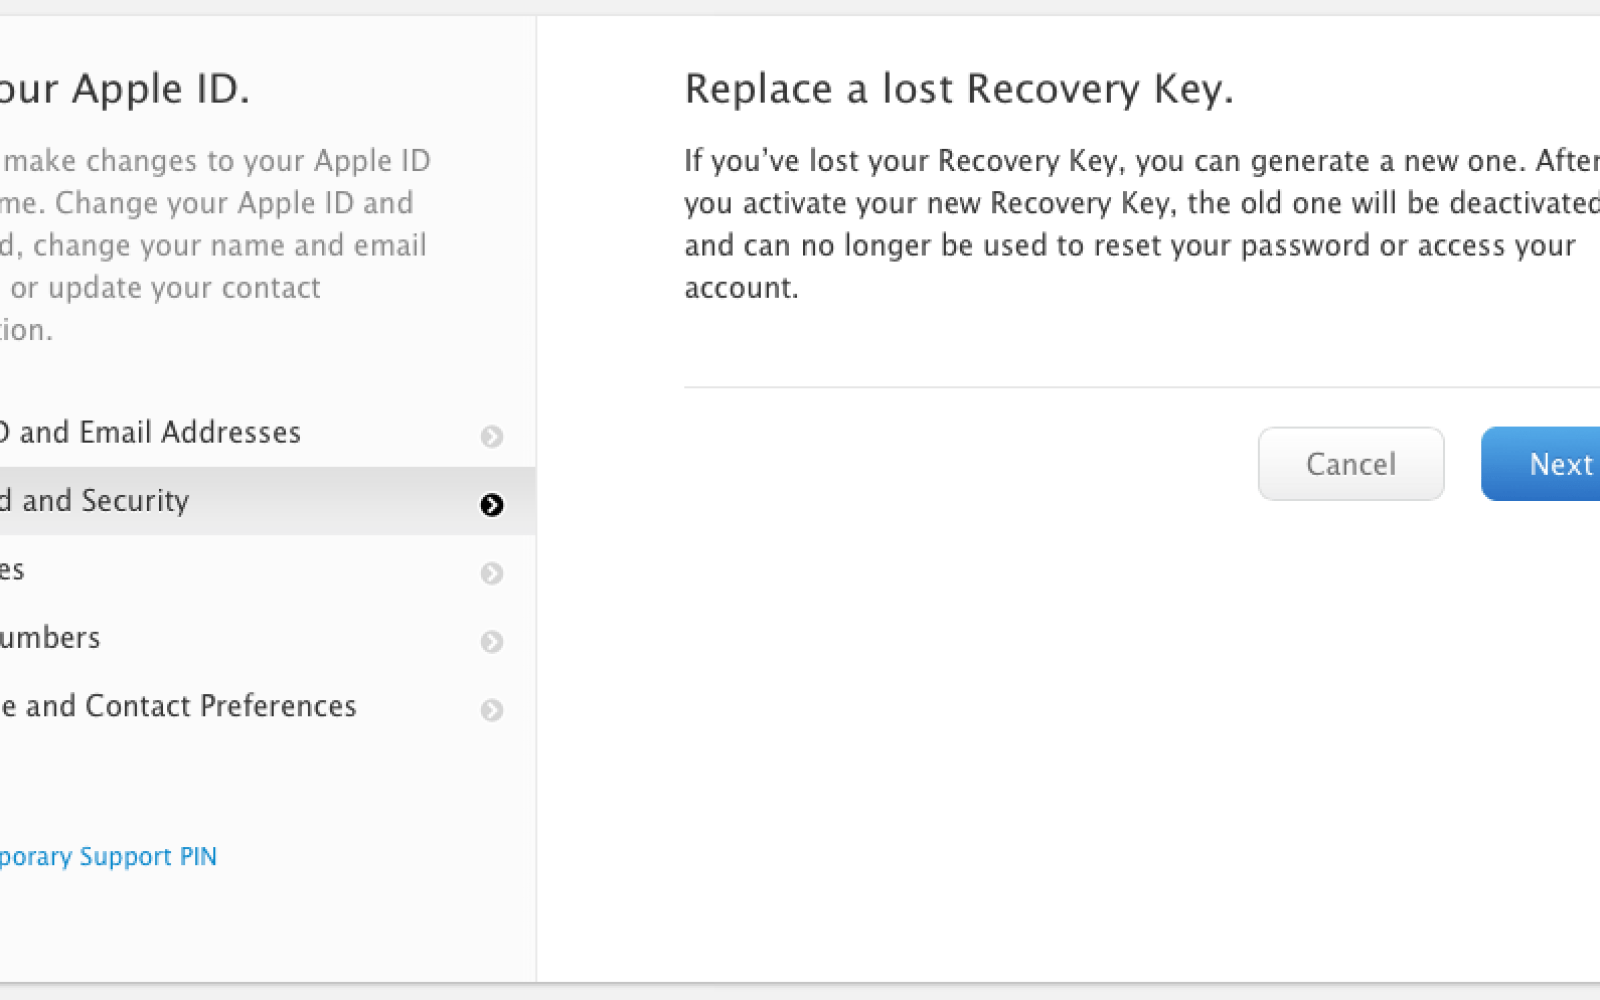 PSA: Make sure you have a recovery key for your Apple ID – you'll need it if you get hacked